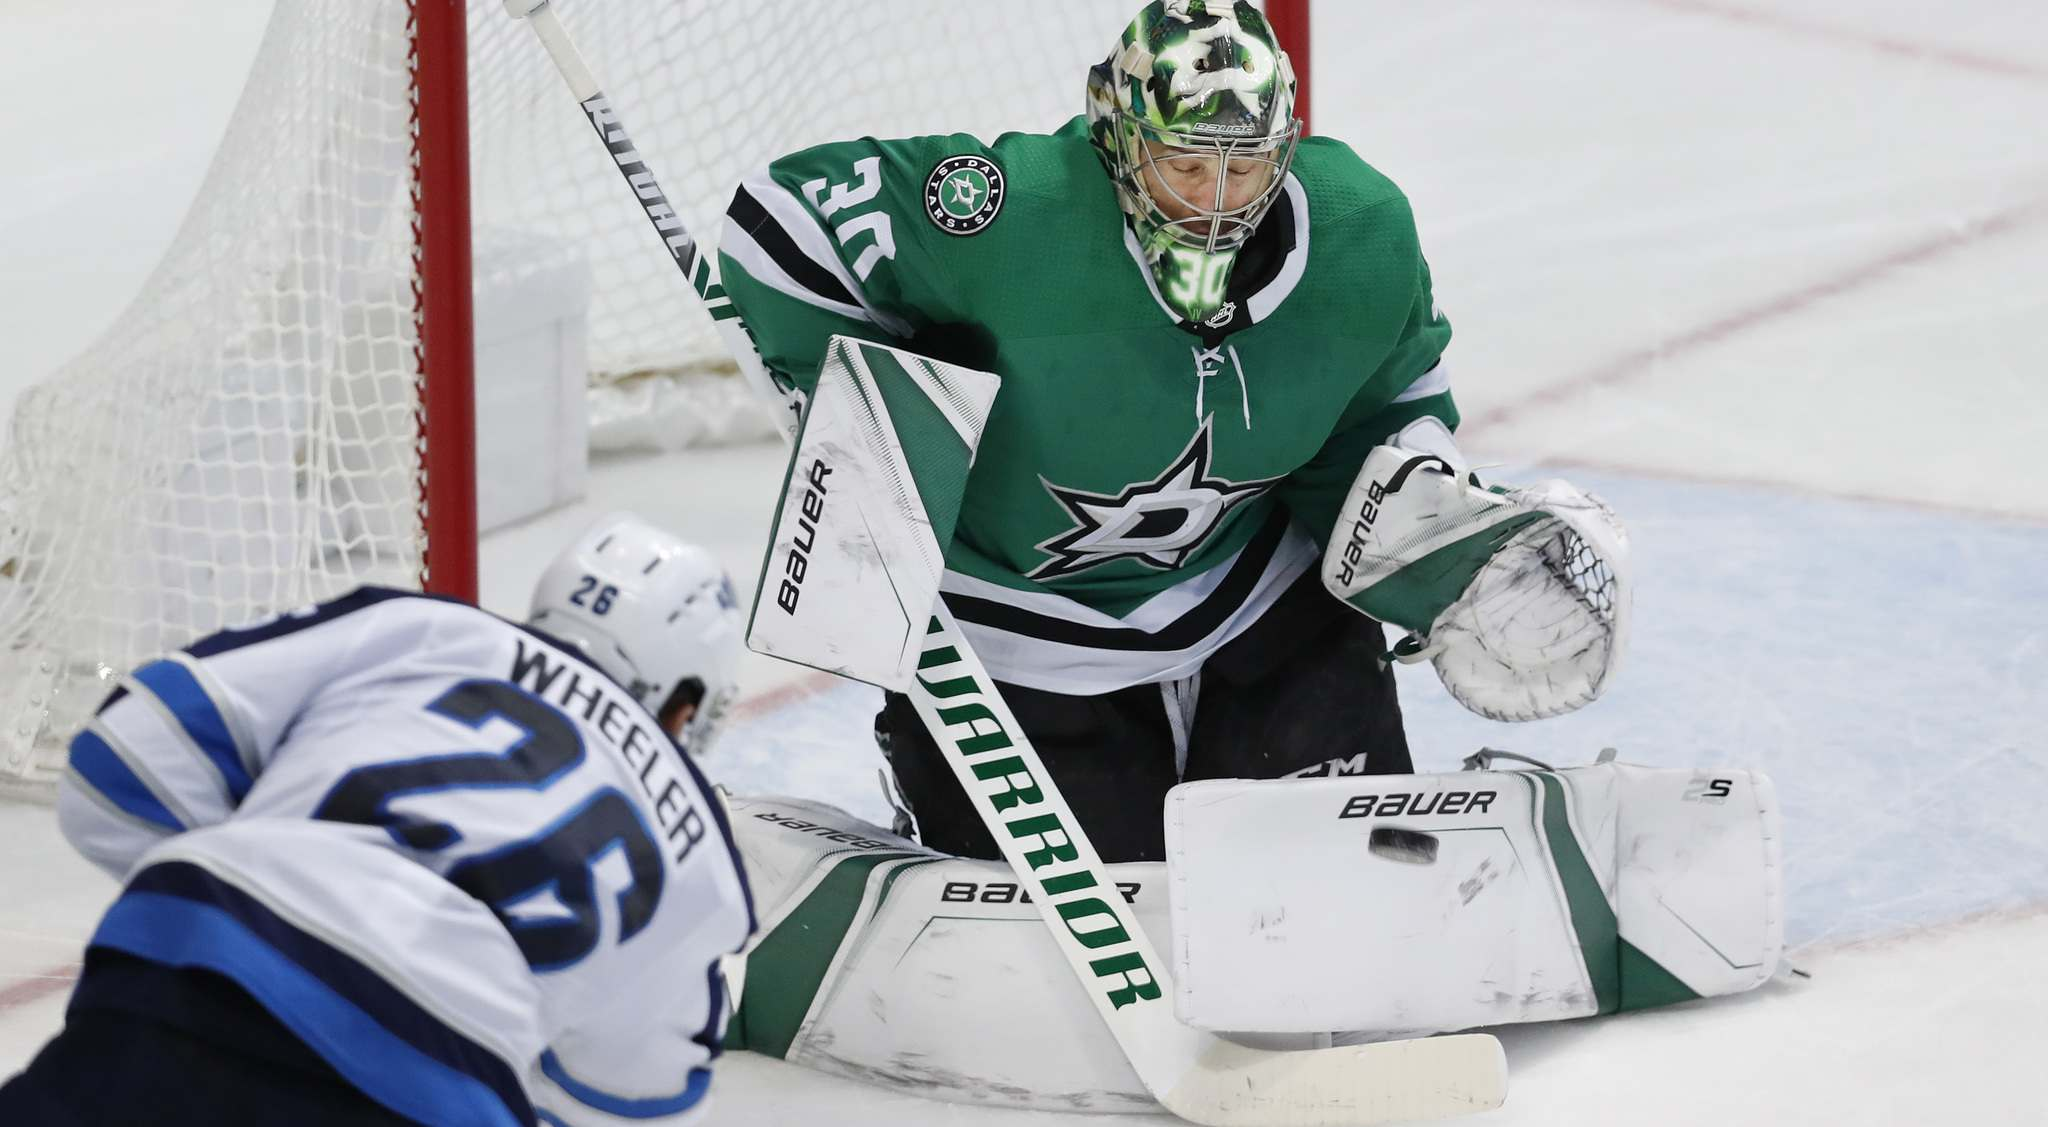 There&#39;s a good chance the Jets could face the Stars in the first round of the playoffs based on today&#39;s standings. On Monday, the teams meet for the final time this season. (LM Otero / The Associated Press files)</p>